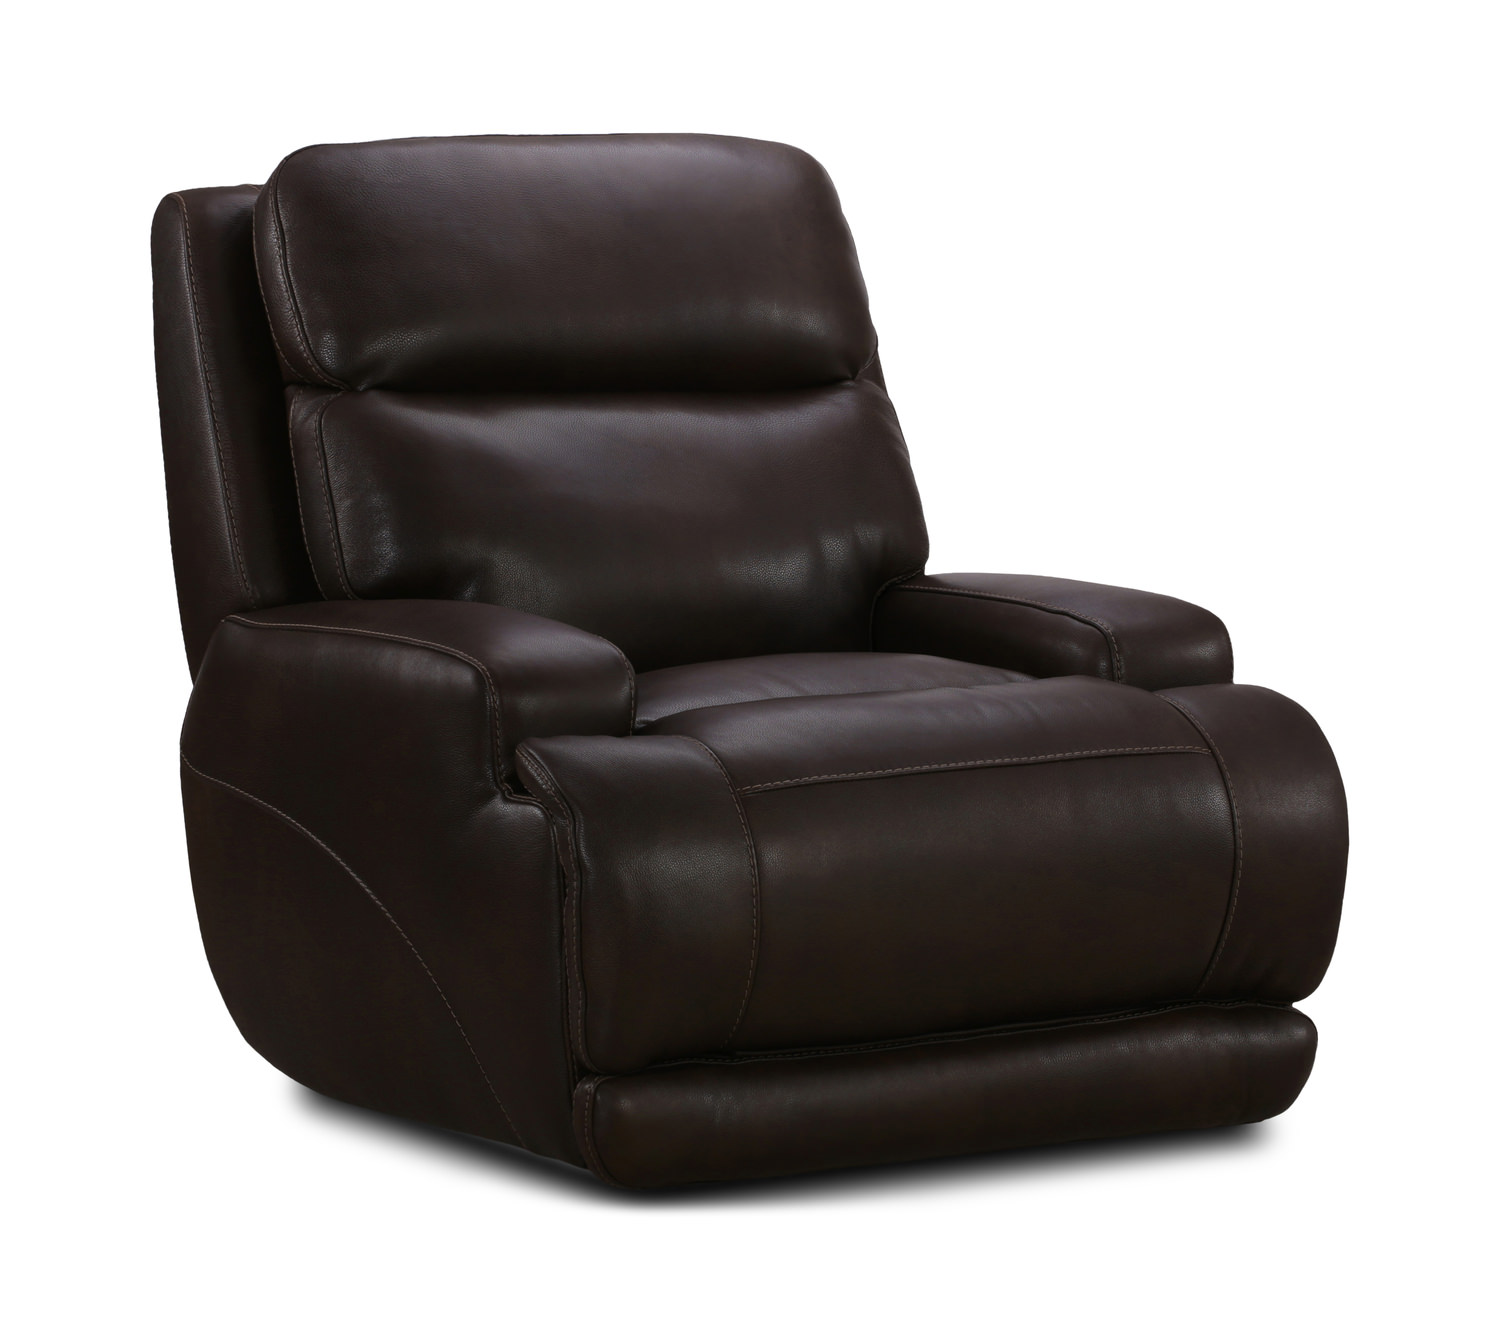 Astounding Bevo Leather Power Recliner Gmtry Best Dining Table And Chair Ideas Images Gmtryco